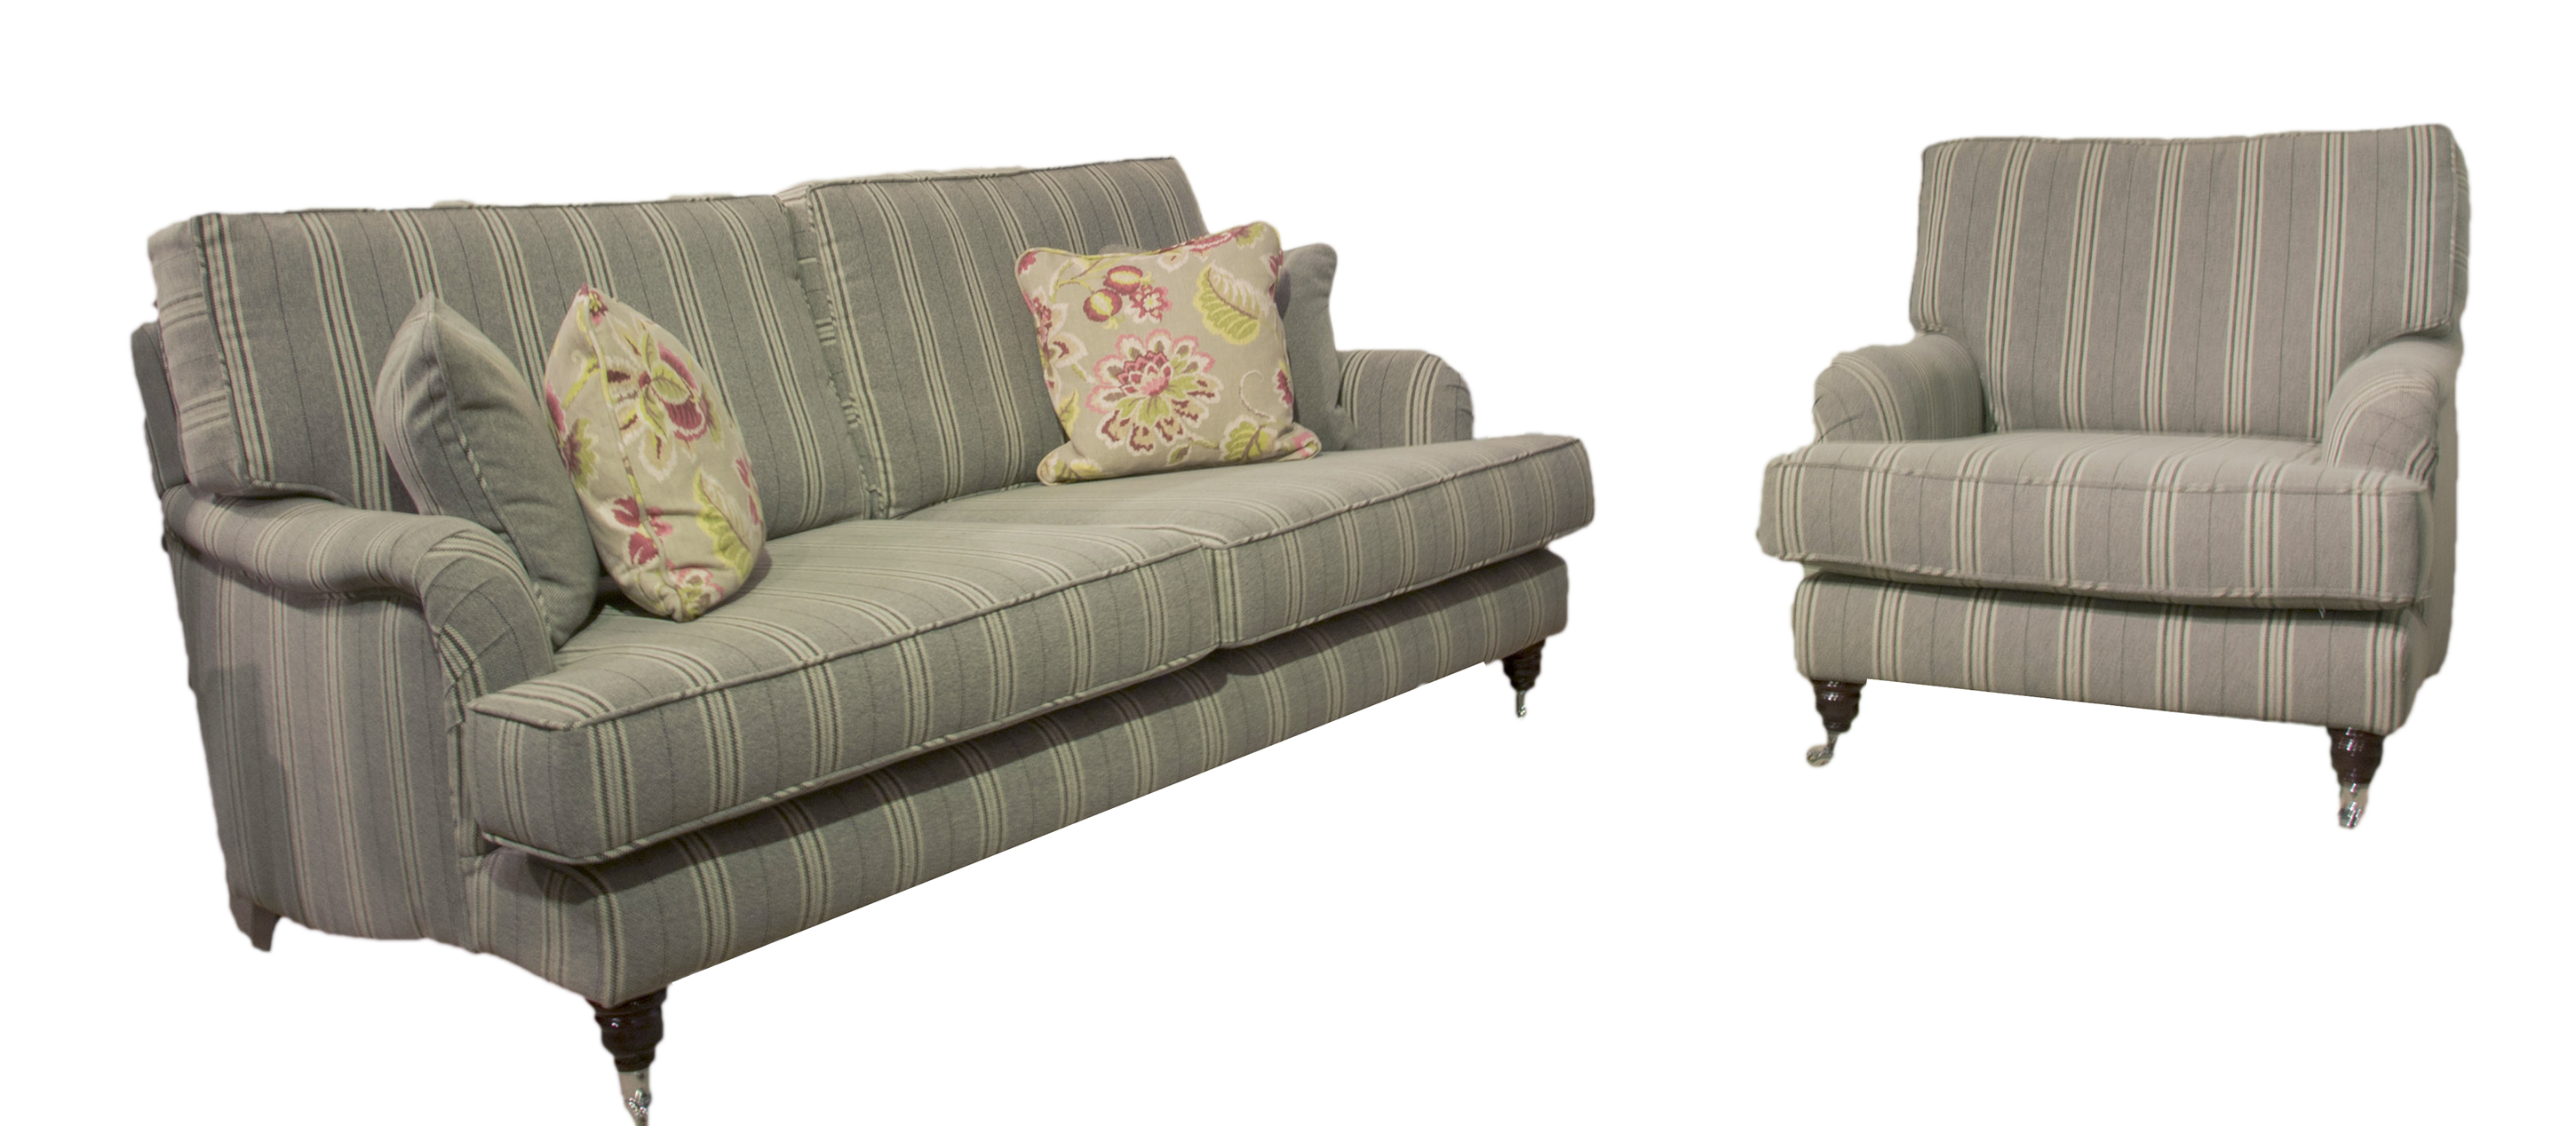 Holmes Sofas And Chairs Range Finline Furniture